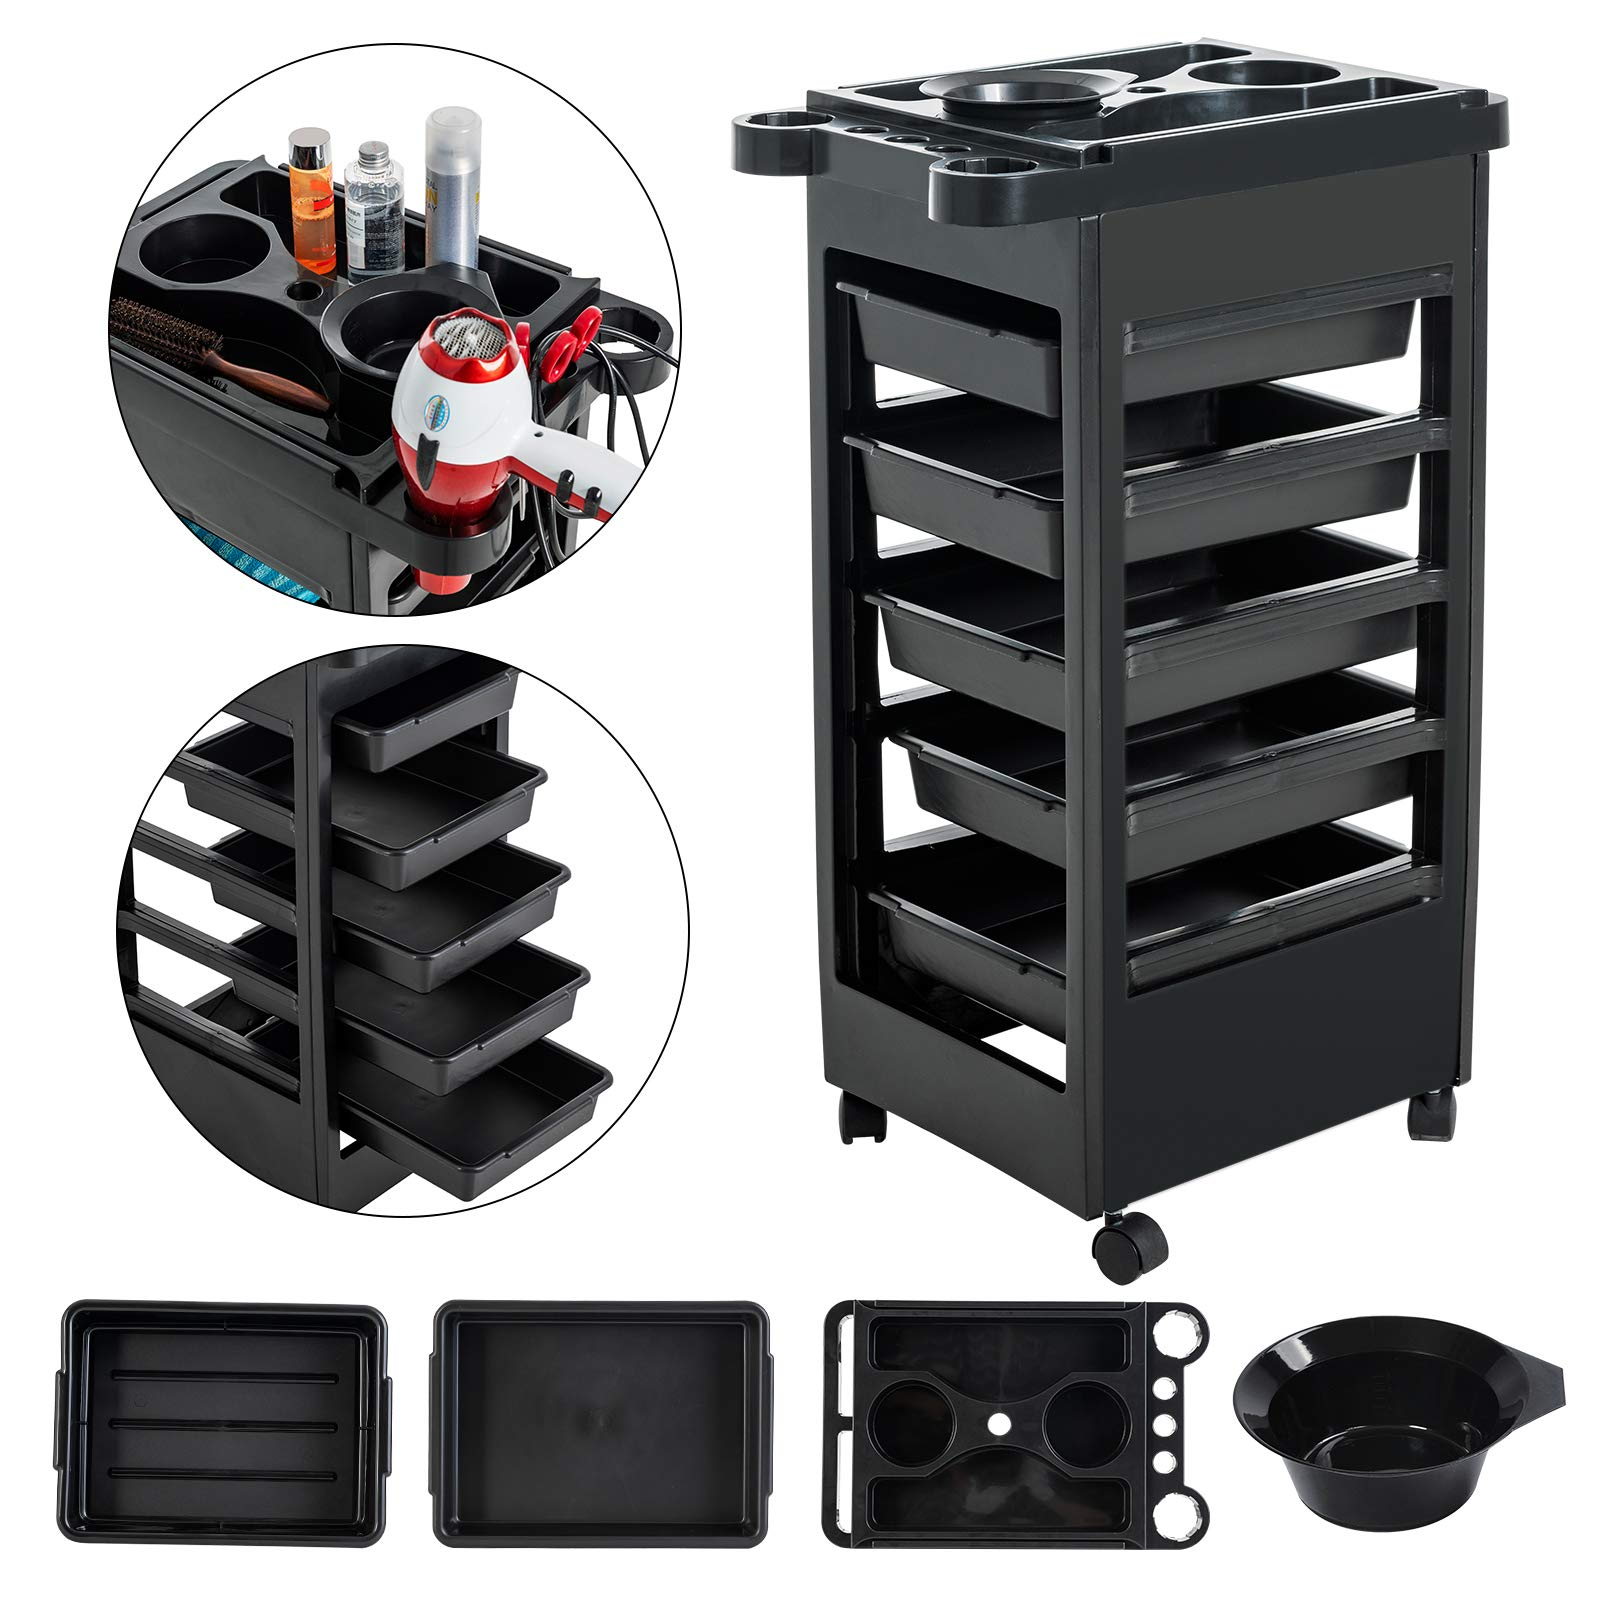 NURXIOVO Salon Cart Beauty Hairdressing Trolley Storage Organizer with Hairdryer Holders, 5 Drawers, Rolling Wheels, Spa Equipment Mobile Cabinet Black